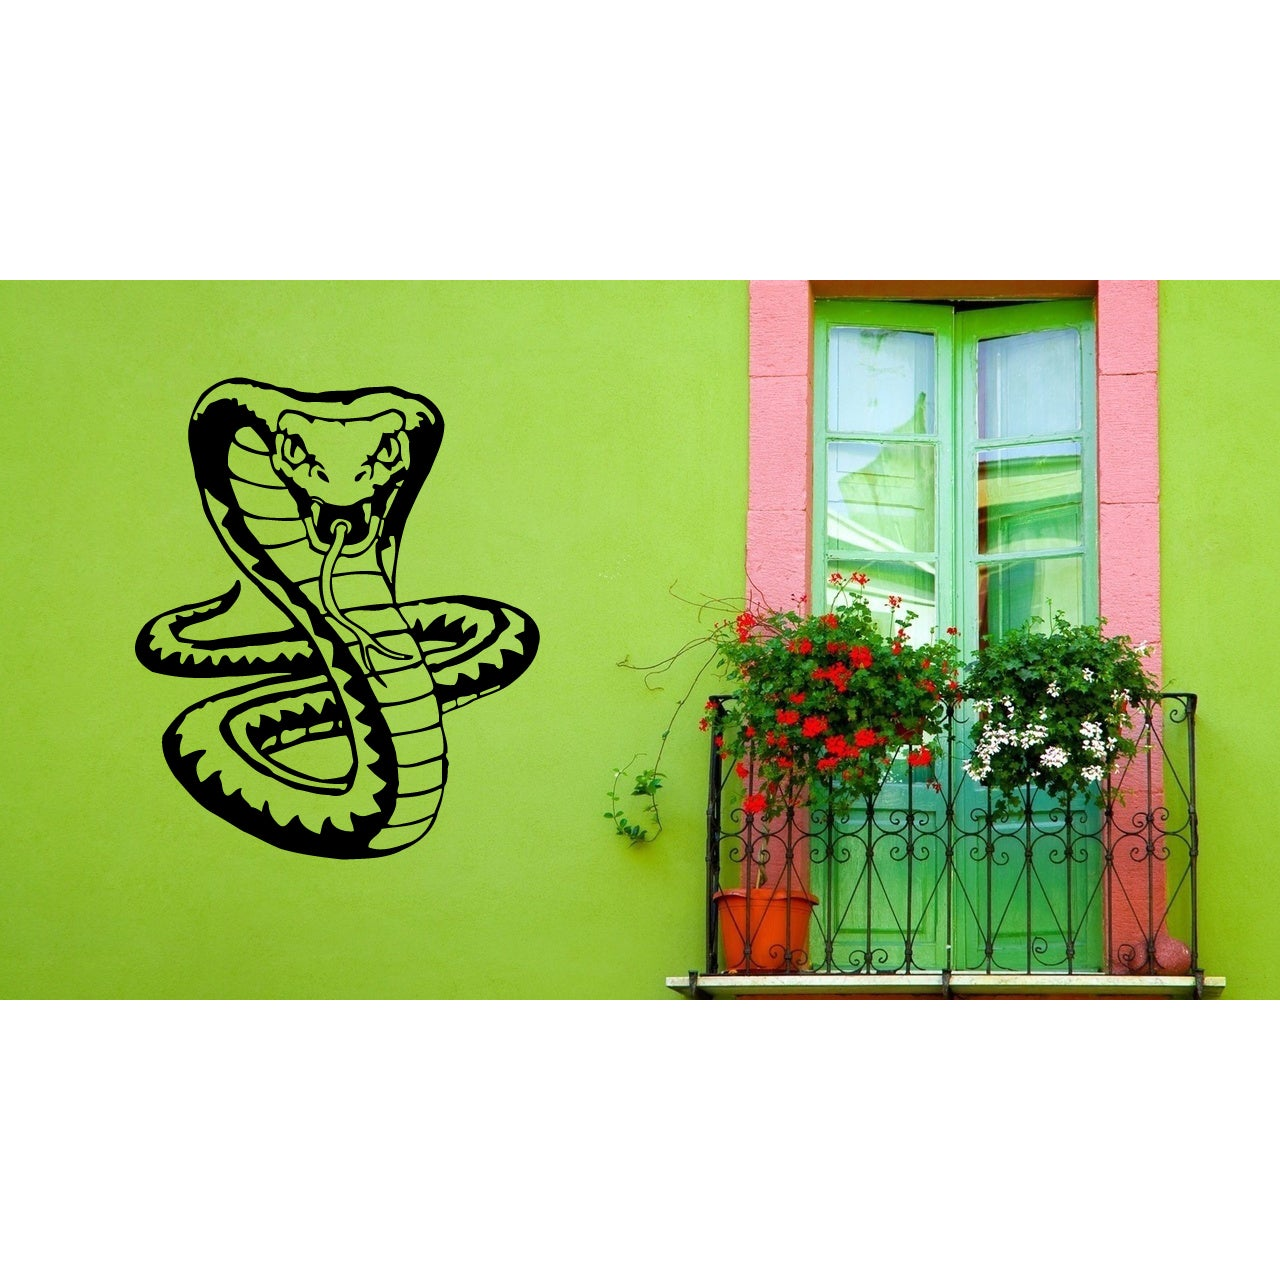 Snake Attacks Wall Art Sticker Decal (22 inches x 24 inch...